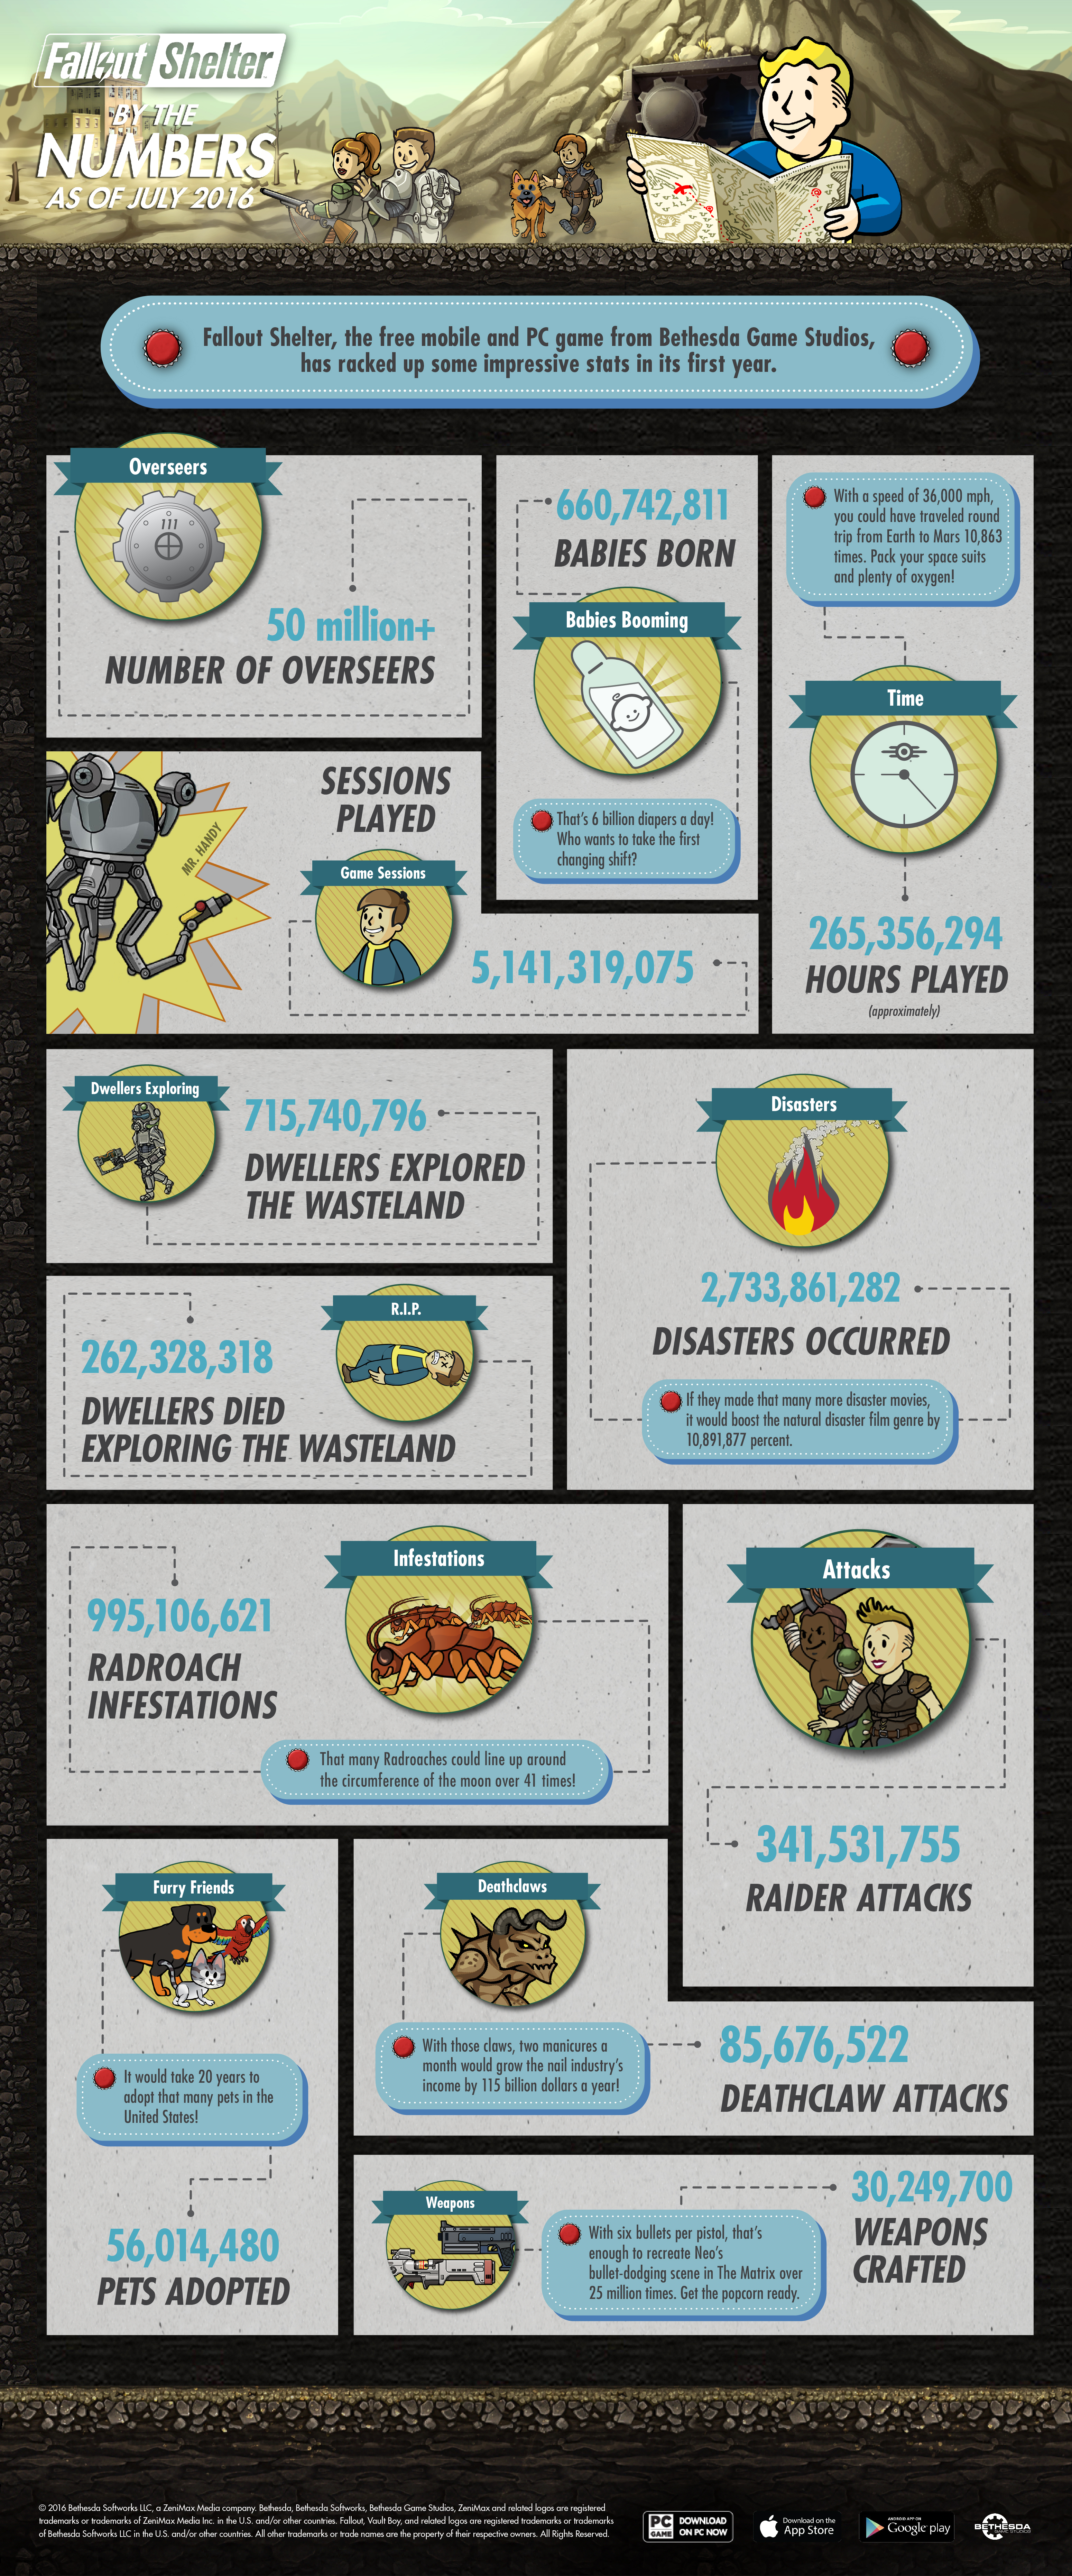 FalloutShelter_Infographic_071316_1468503902